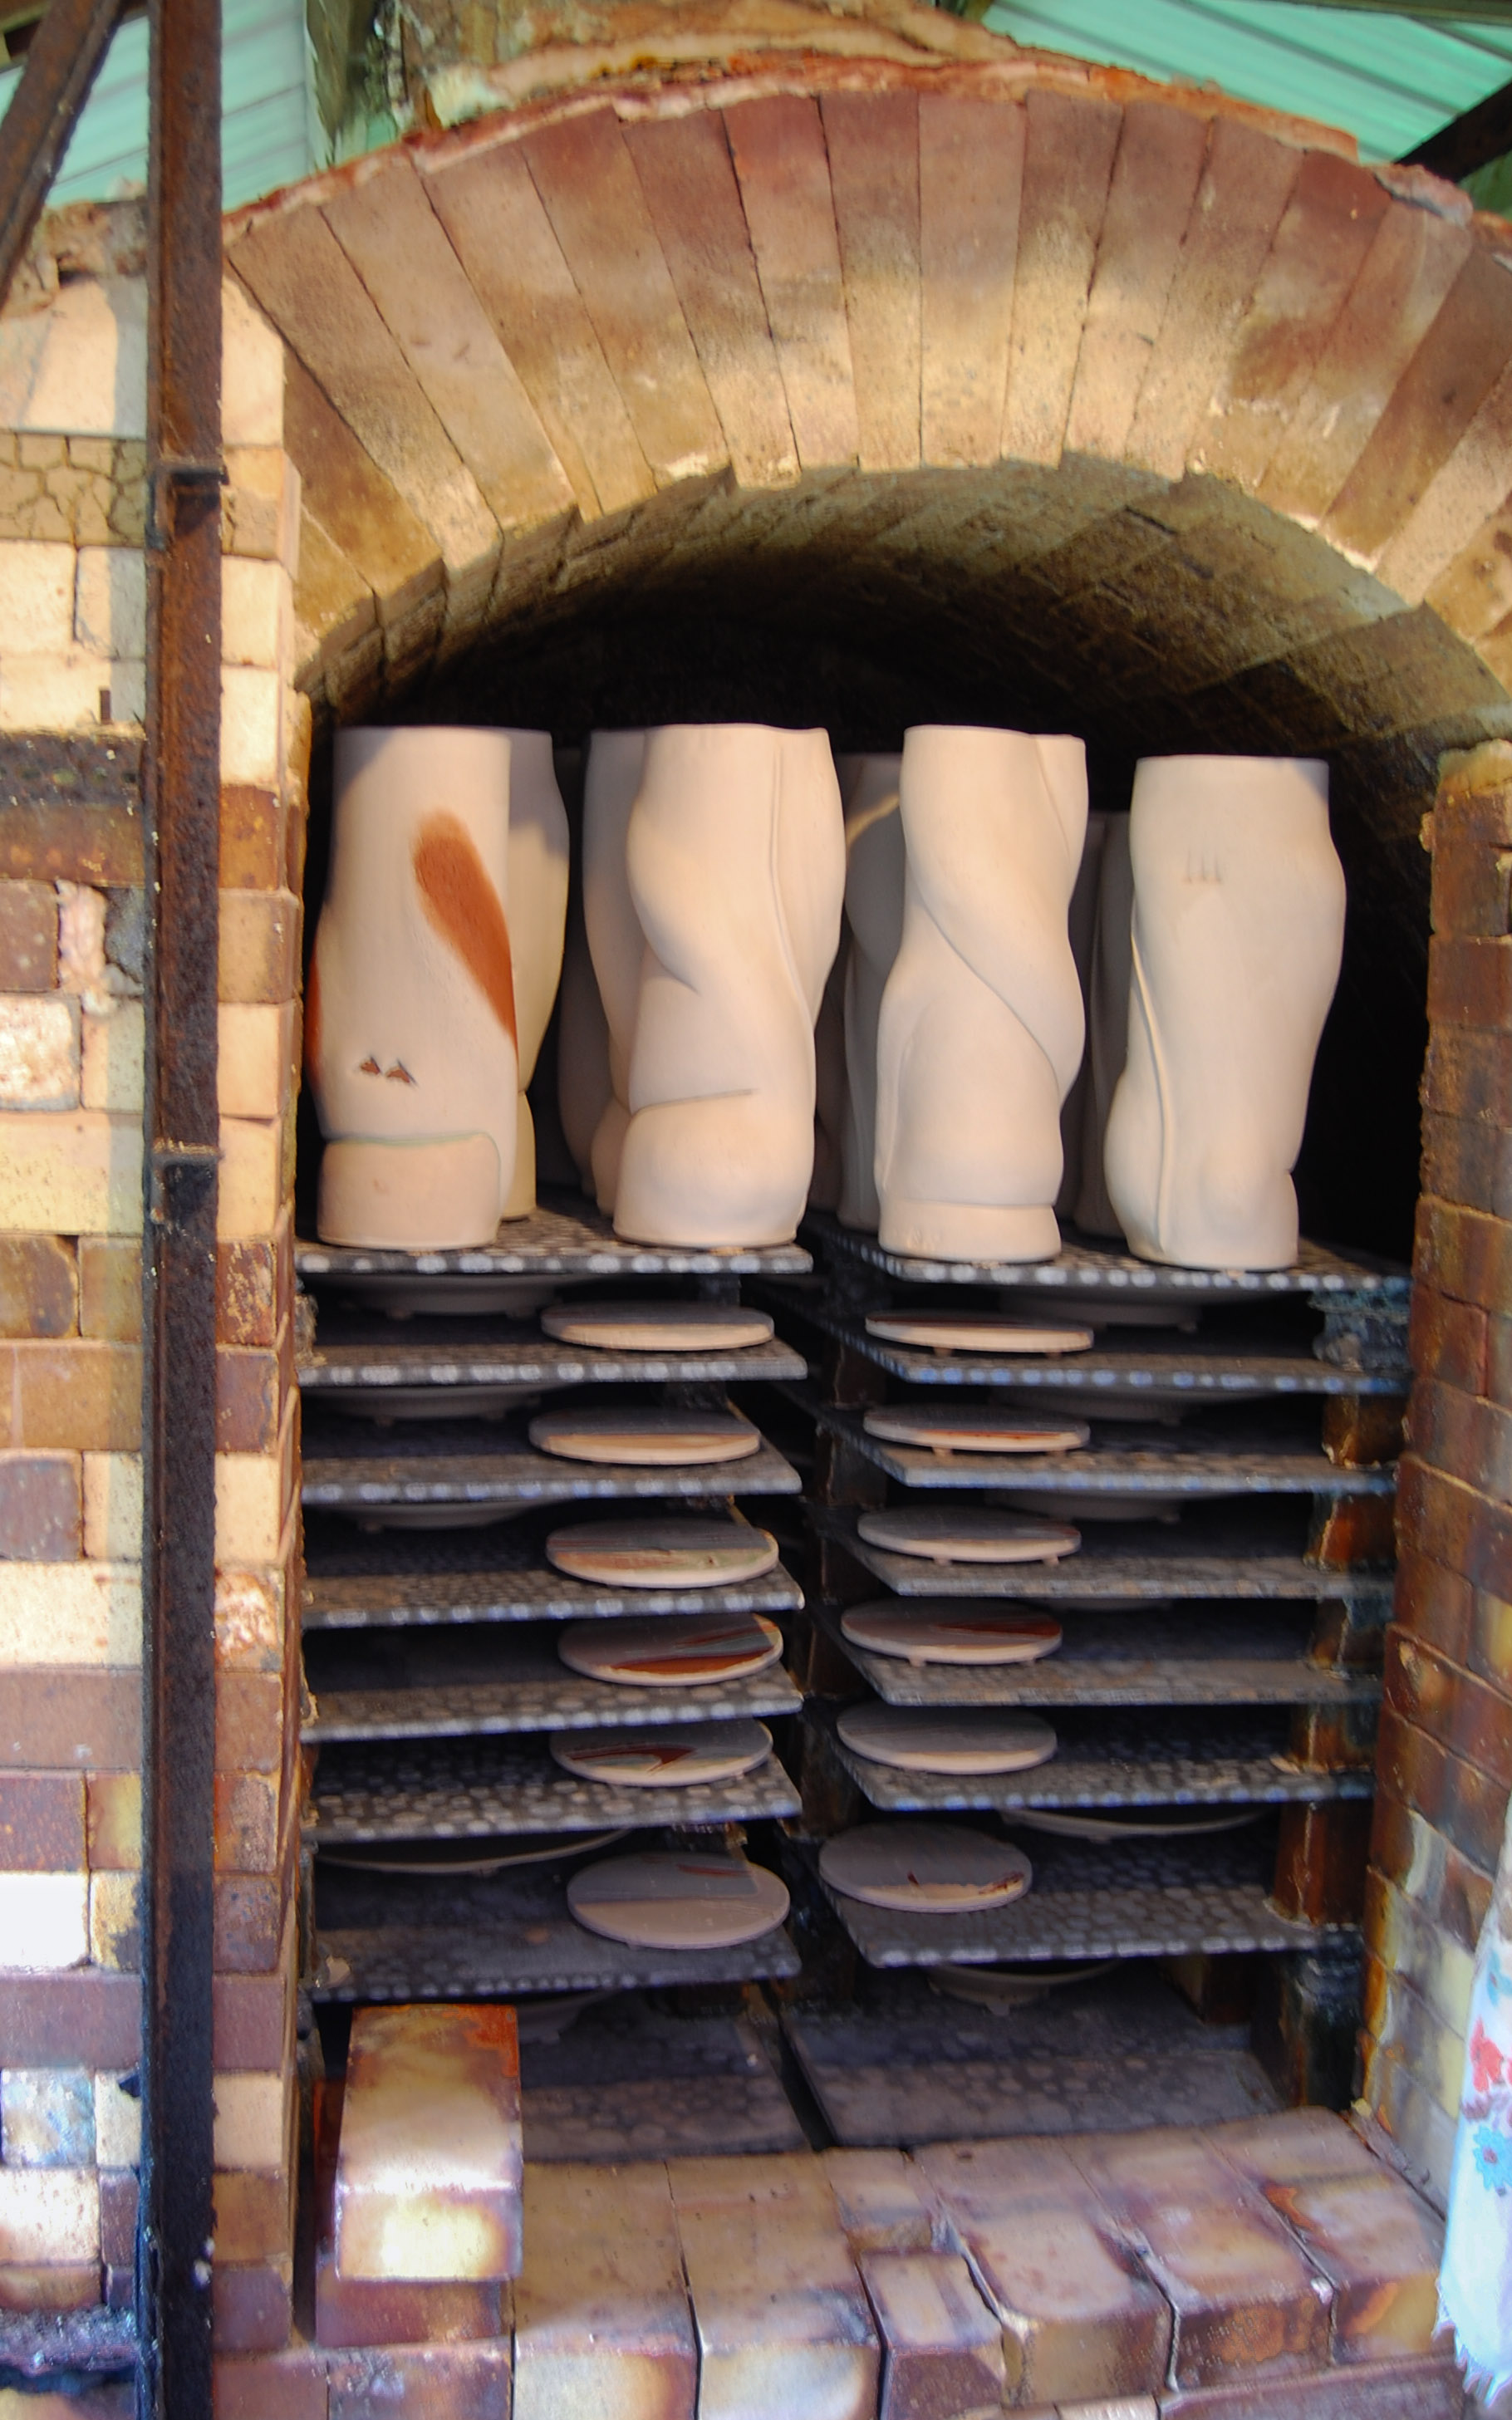 Loaded in the kiln with other pieces